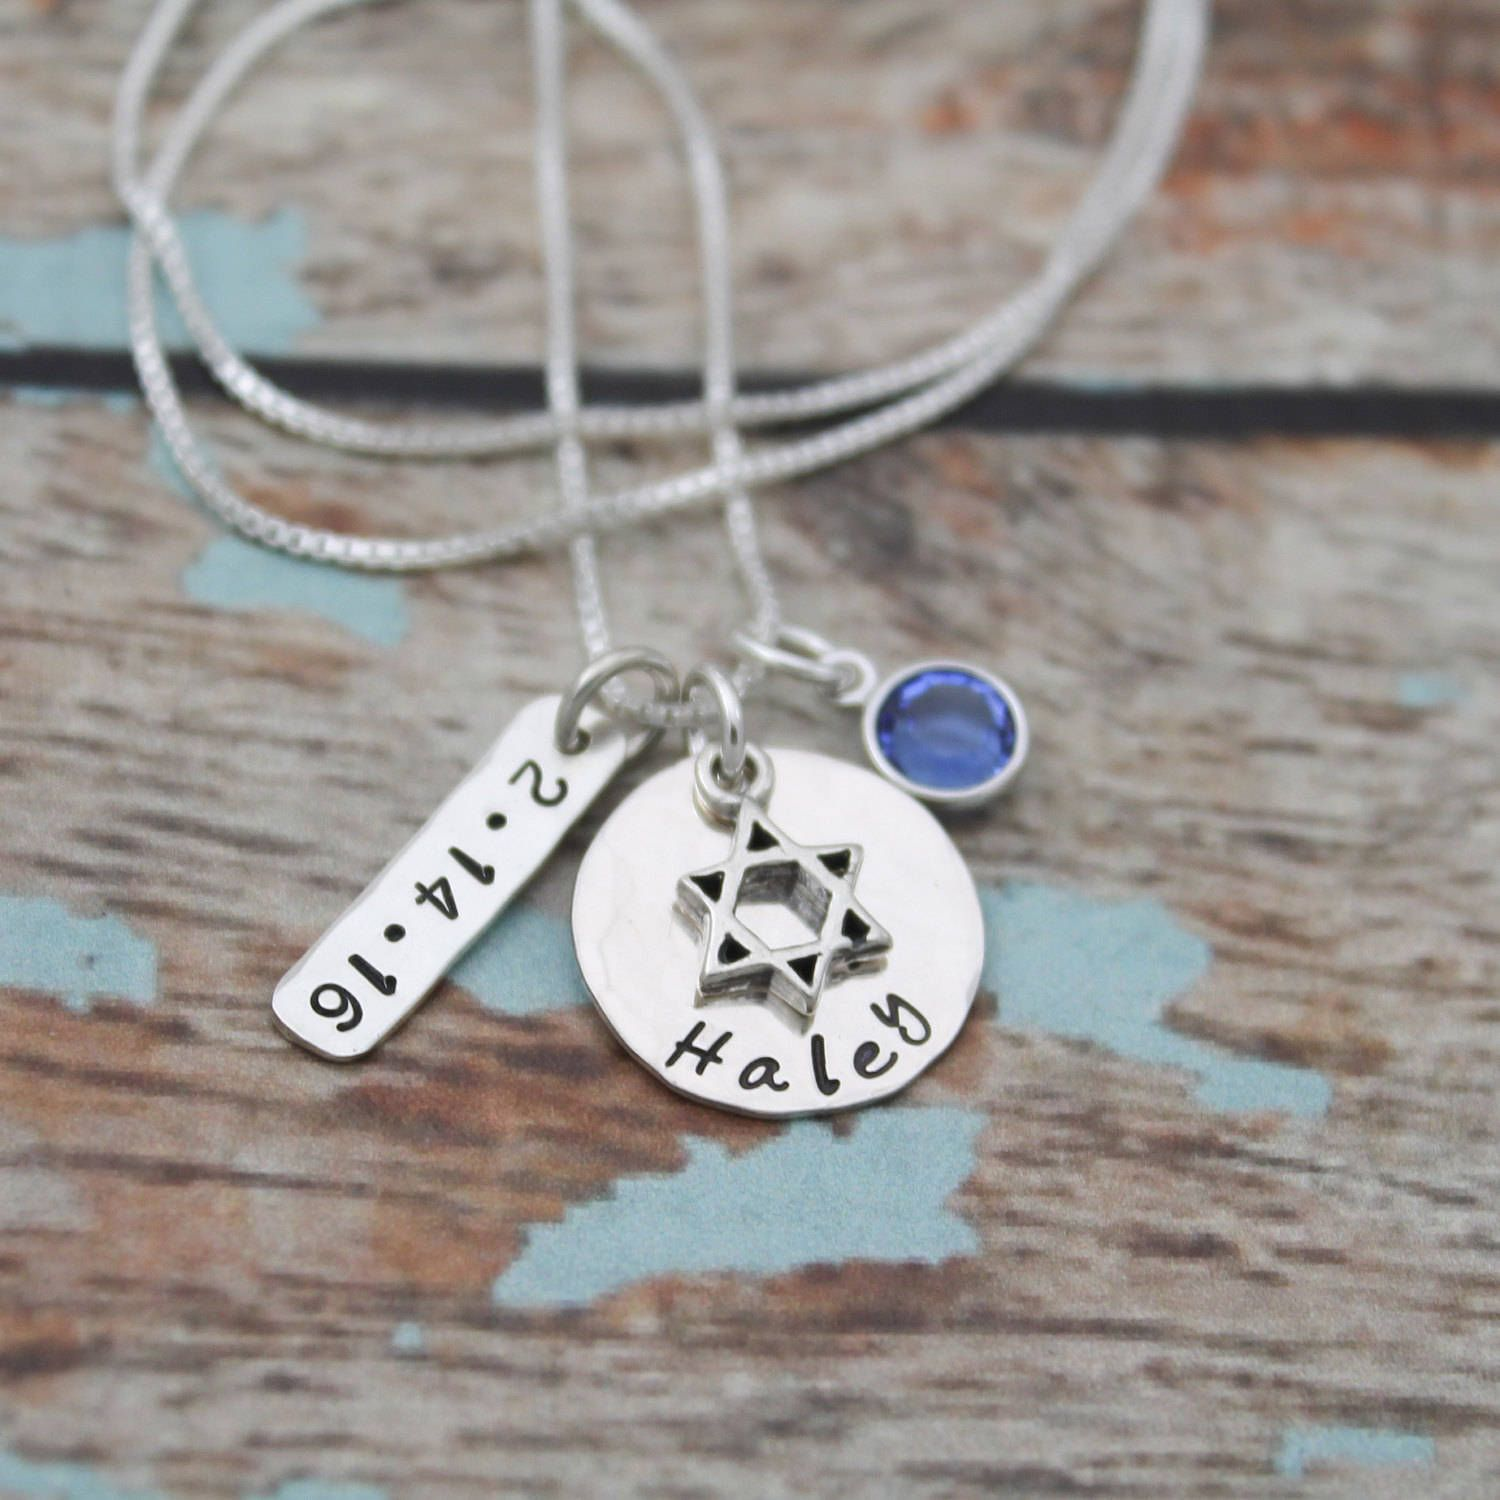 Bat mitzvah necklace with date and birthstone